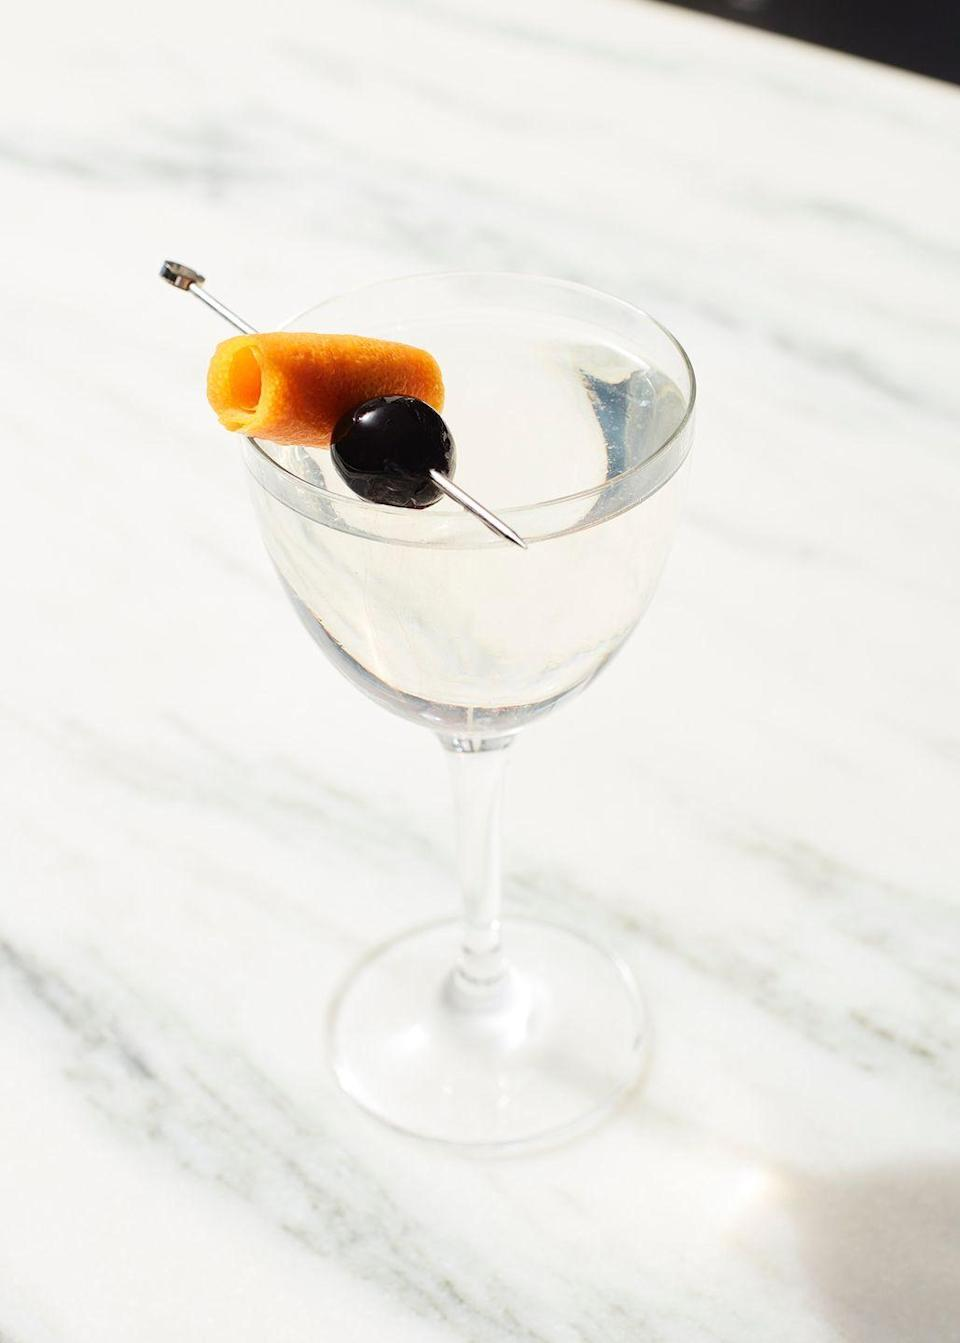 <p><strong>Ingredients</strong></p><p>2.25 oz Plymouth gin<br>.5 oz Dolin Blanc vermouth<br>.25 oz maraschino liqueur<br>2 dashes orange bitters<br>A dash of absinthe <br></p><p><strong>Instructions</strong></p><p>Stir all ingredients with ice and strain into an absinthe rinsed Nick and Nora glass. Garnish with an orange twist expressed and rolled on skewer with a brandied cherry.</p><p><em>From Flora Bar in New York City</em></p>